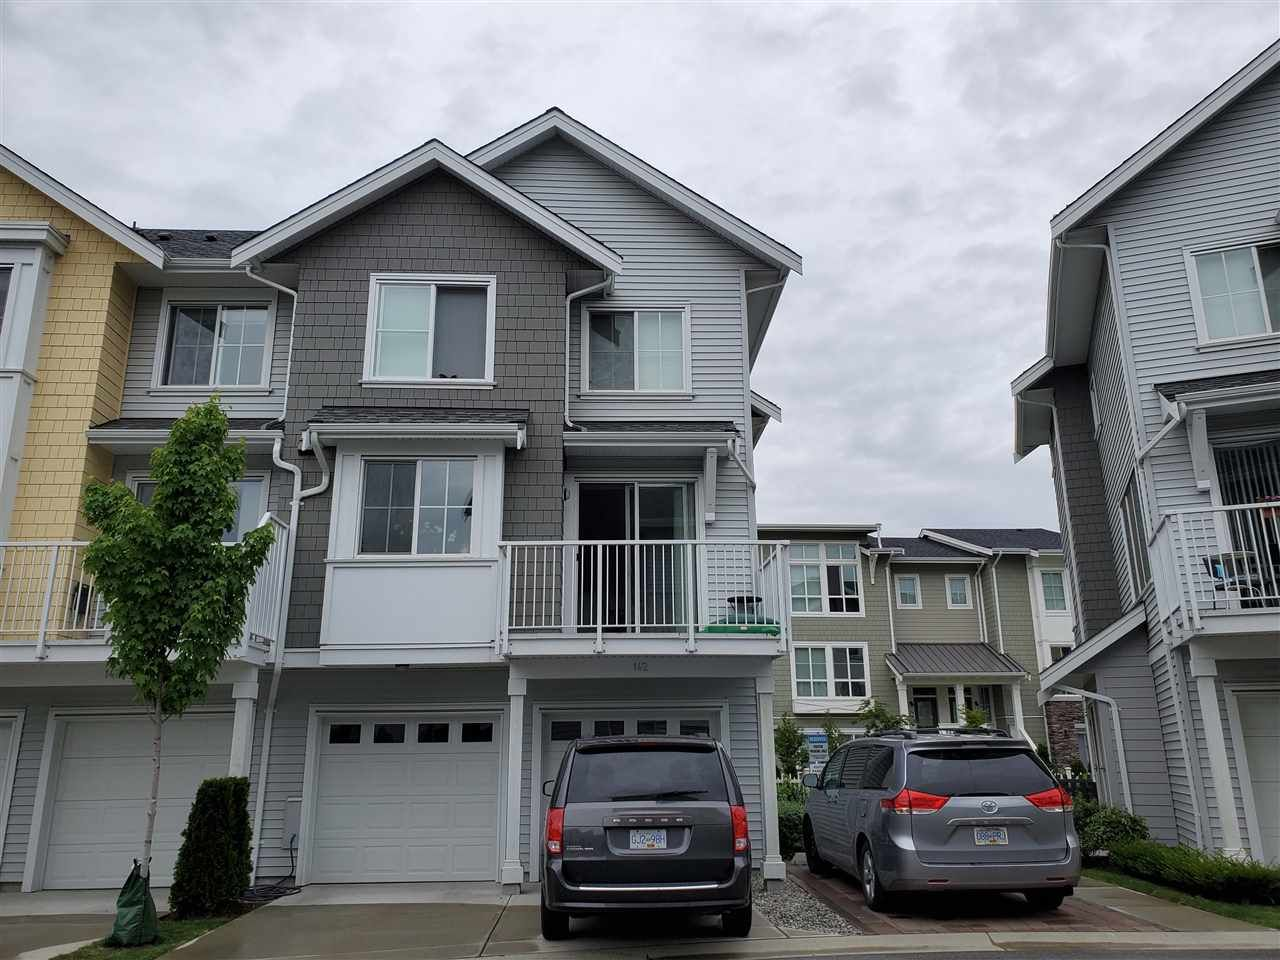 Main Photo: 142 5550 ADMIRAL Way in Ladner: Neilsen Grove Townhouse for sale : MLS®# R2544664